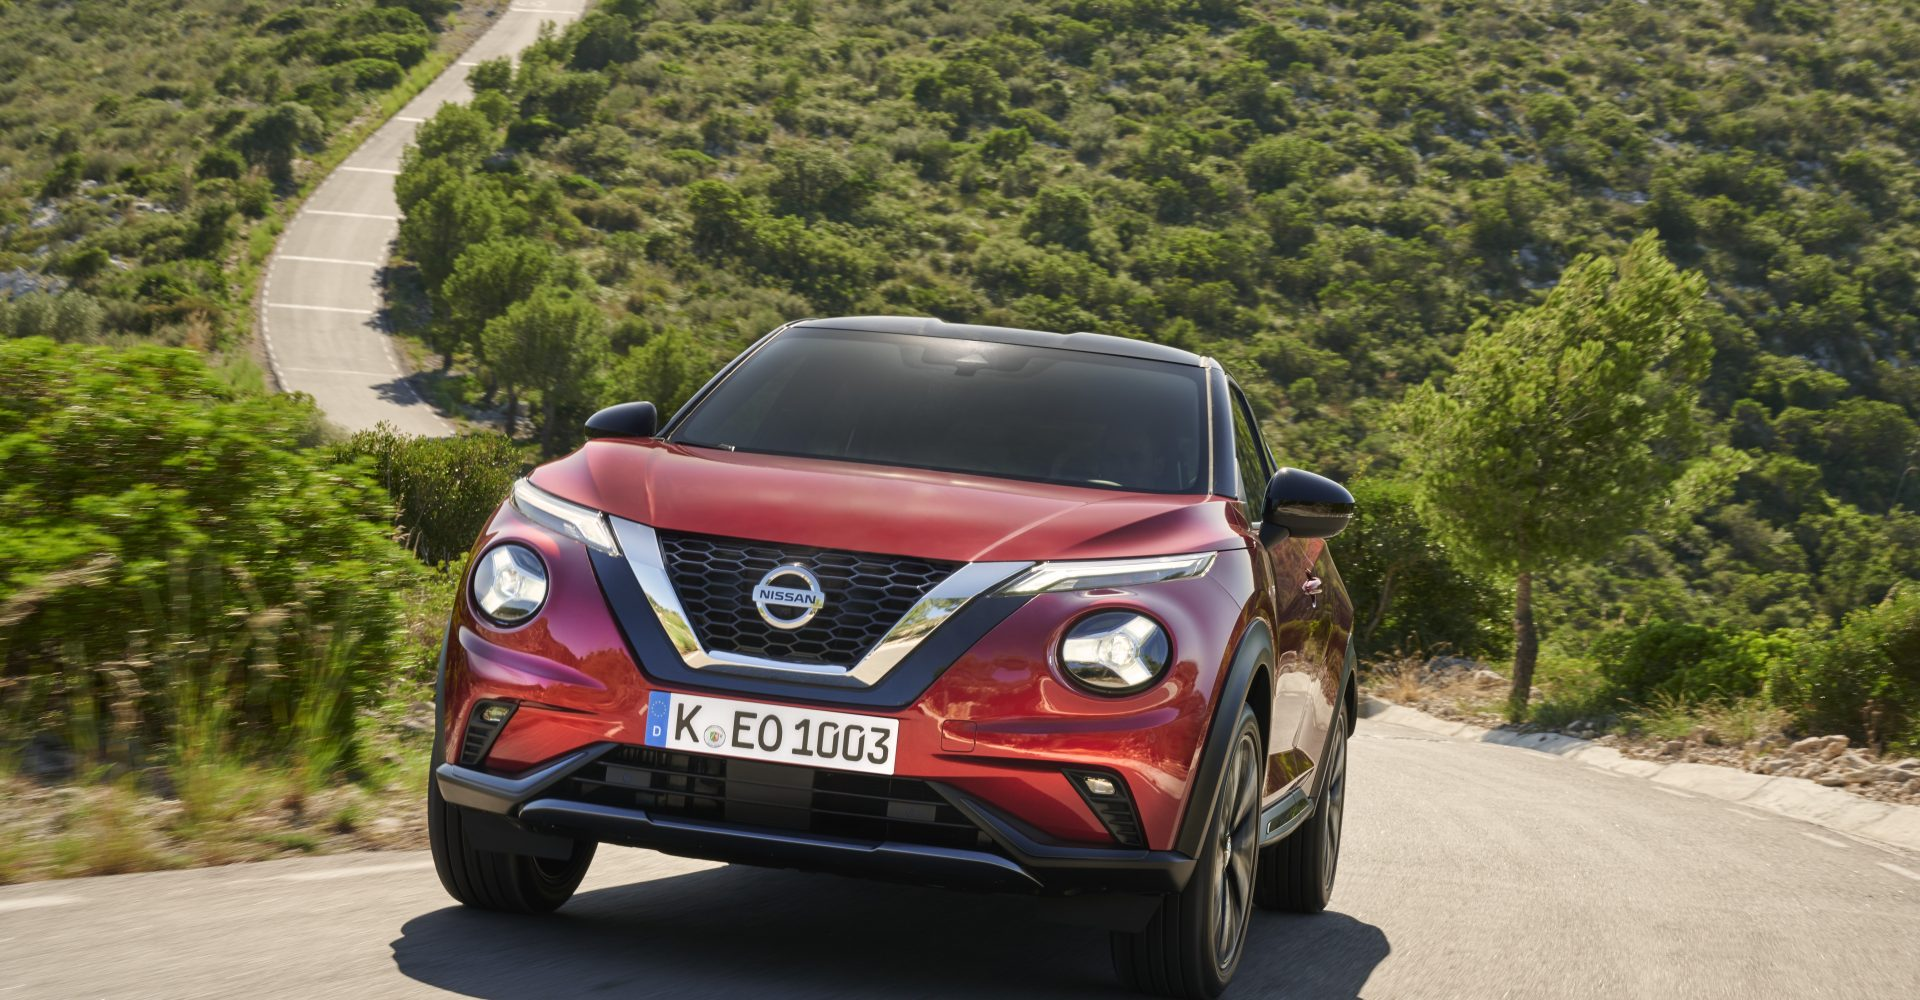 The 10 things you need to know about the new Nissan Juke